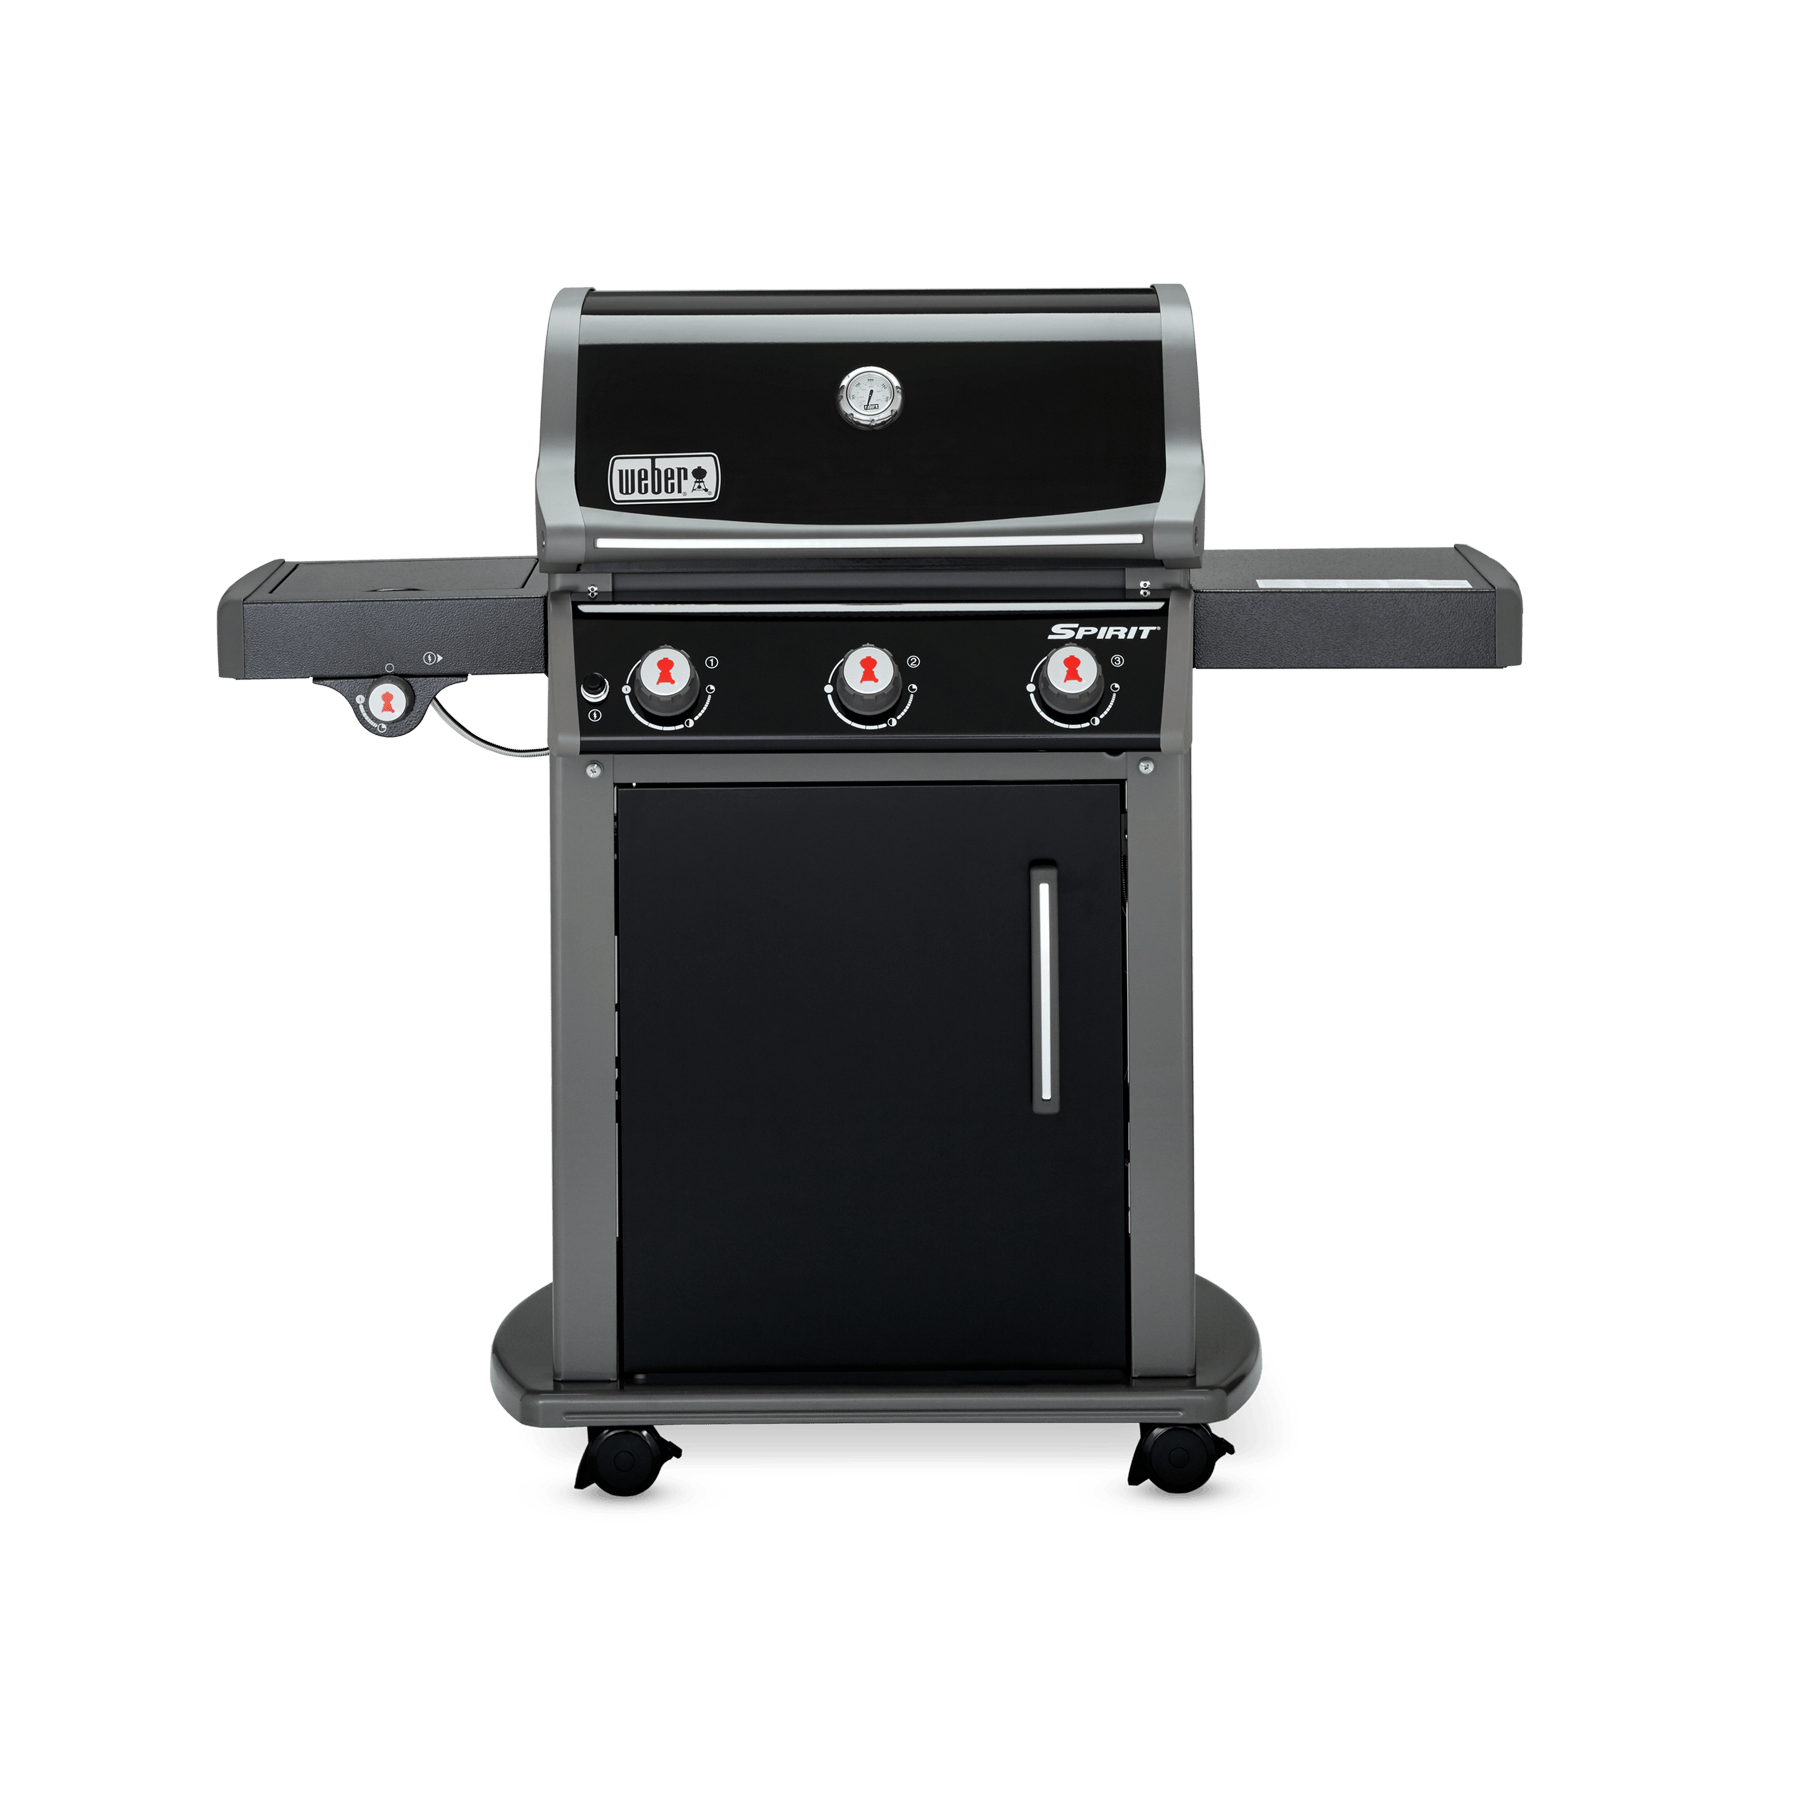 Spirit Original E 320 Gbs Gas Barbecue Gas Grill Reviews Best Gas Grills Weber Gas Grills